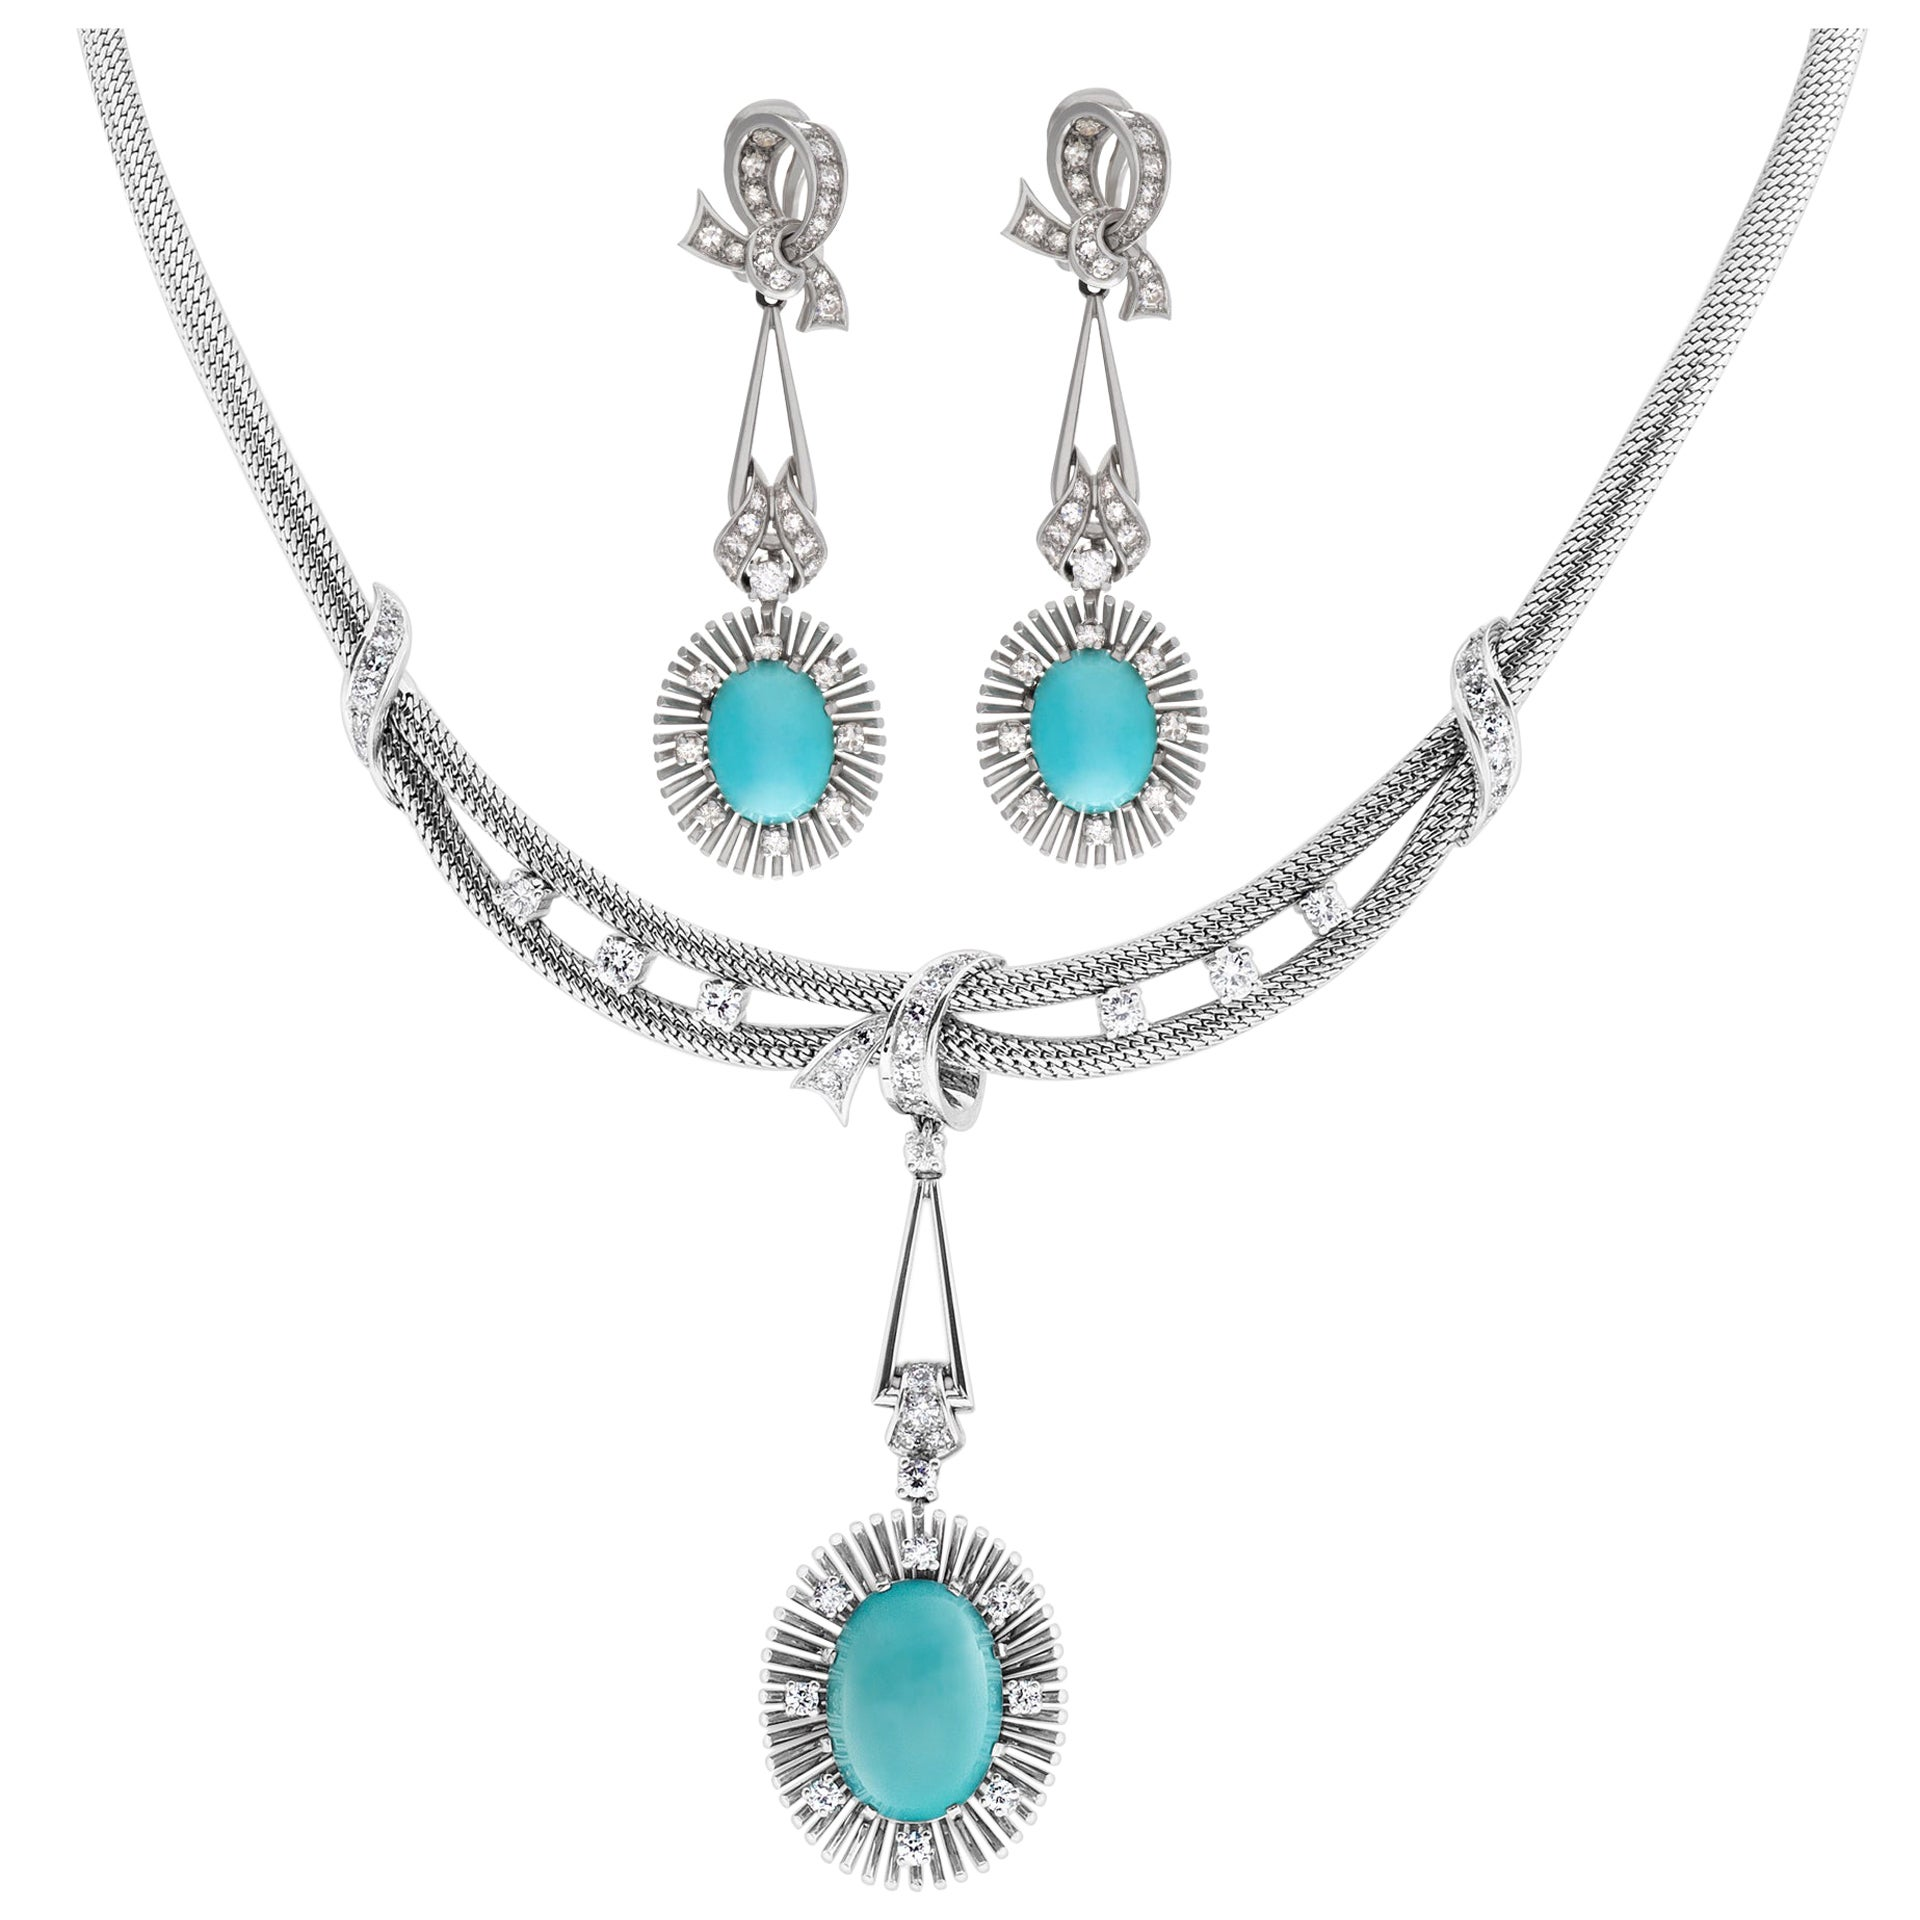 Turquoise and Diamond Necklace and Earrings Set in 18 Karat White Gold